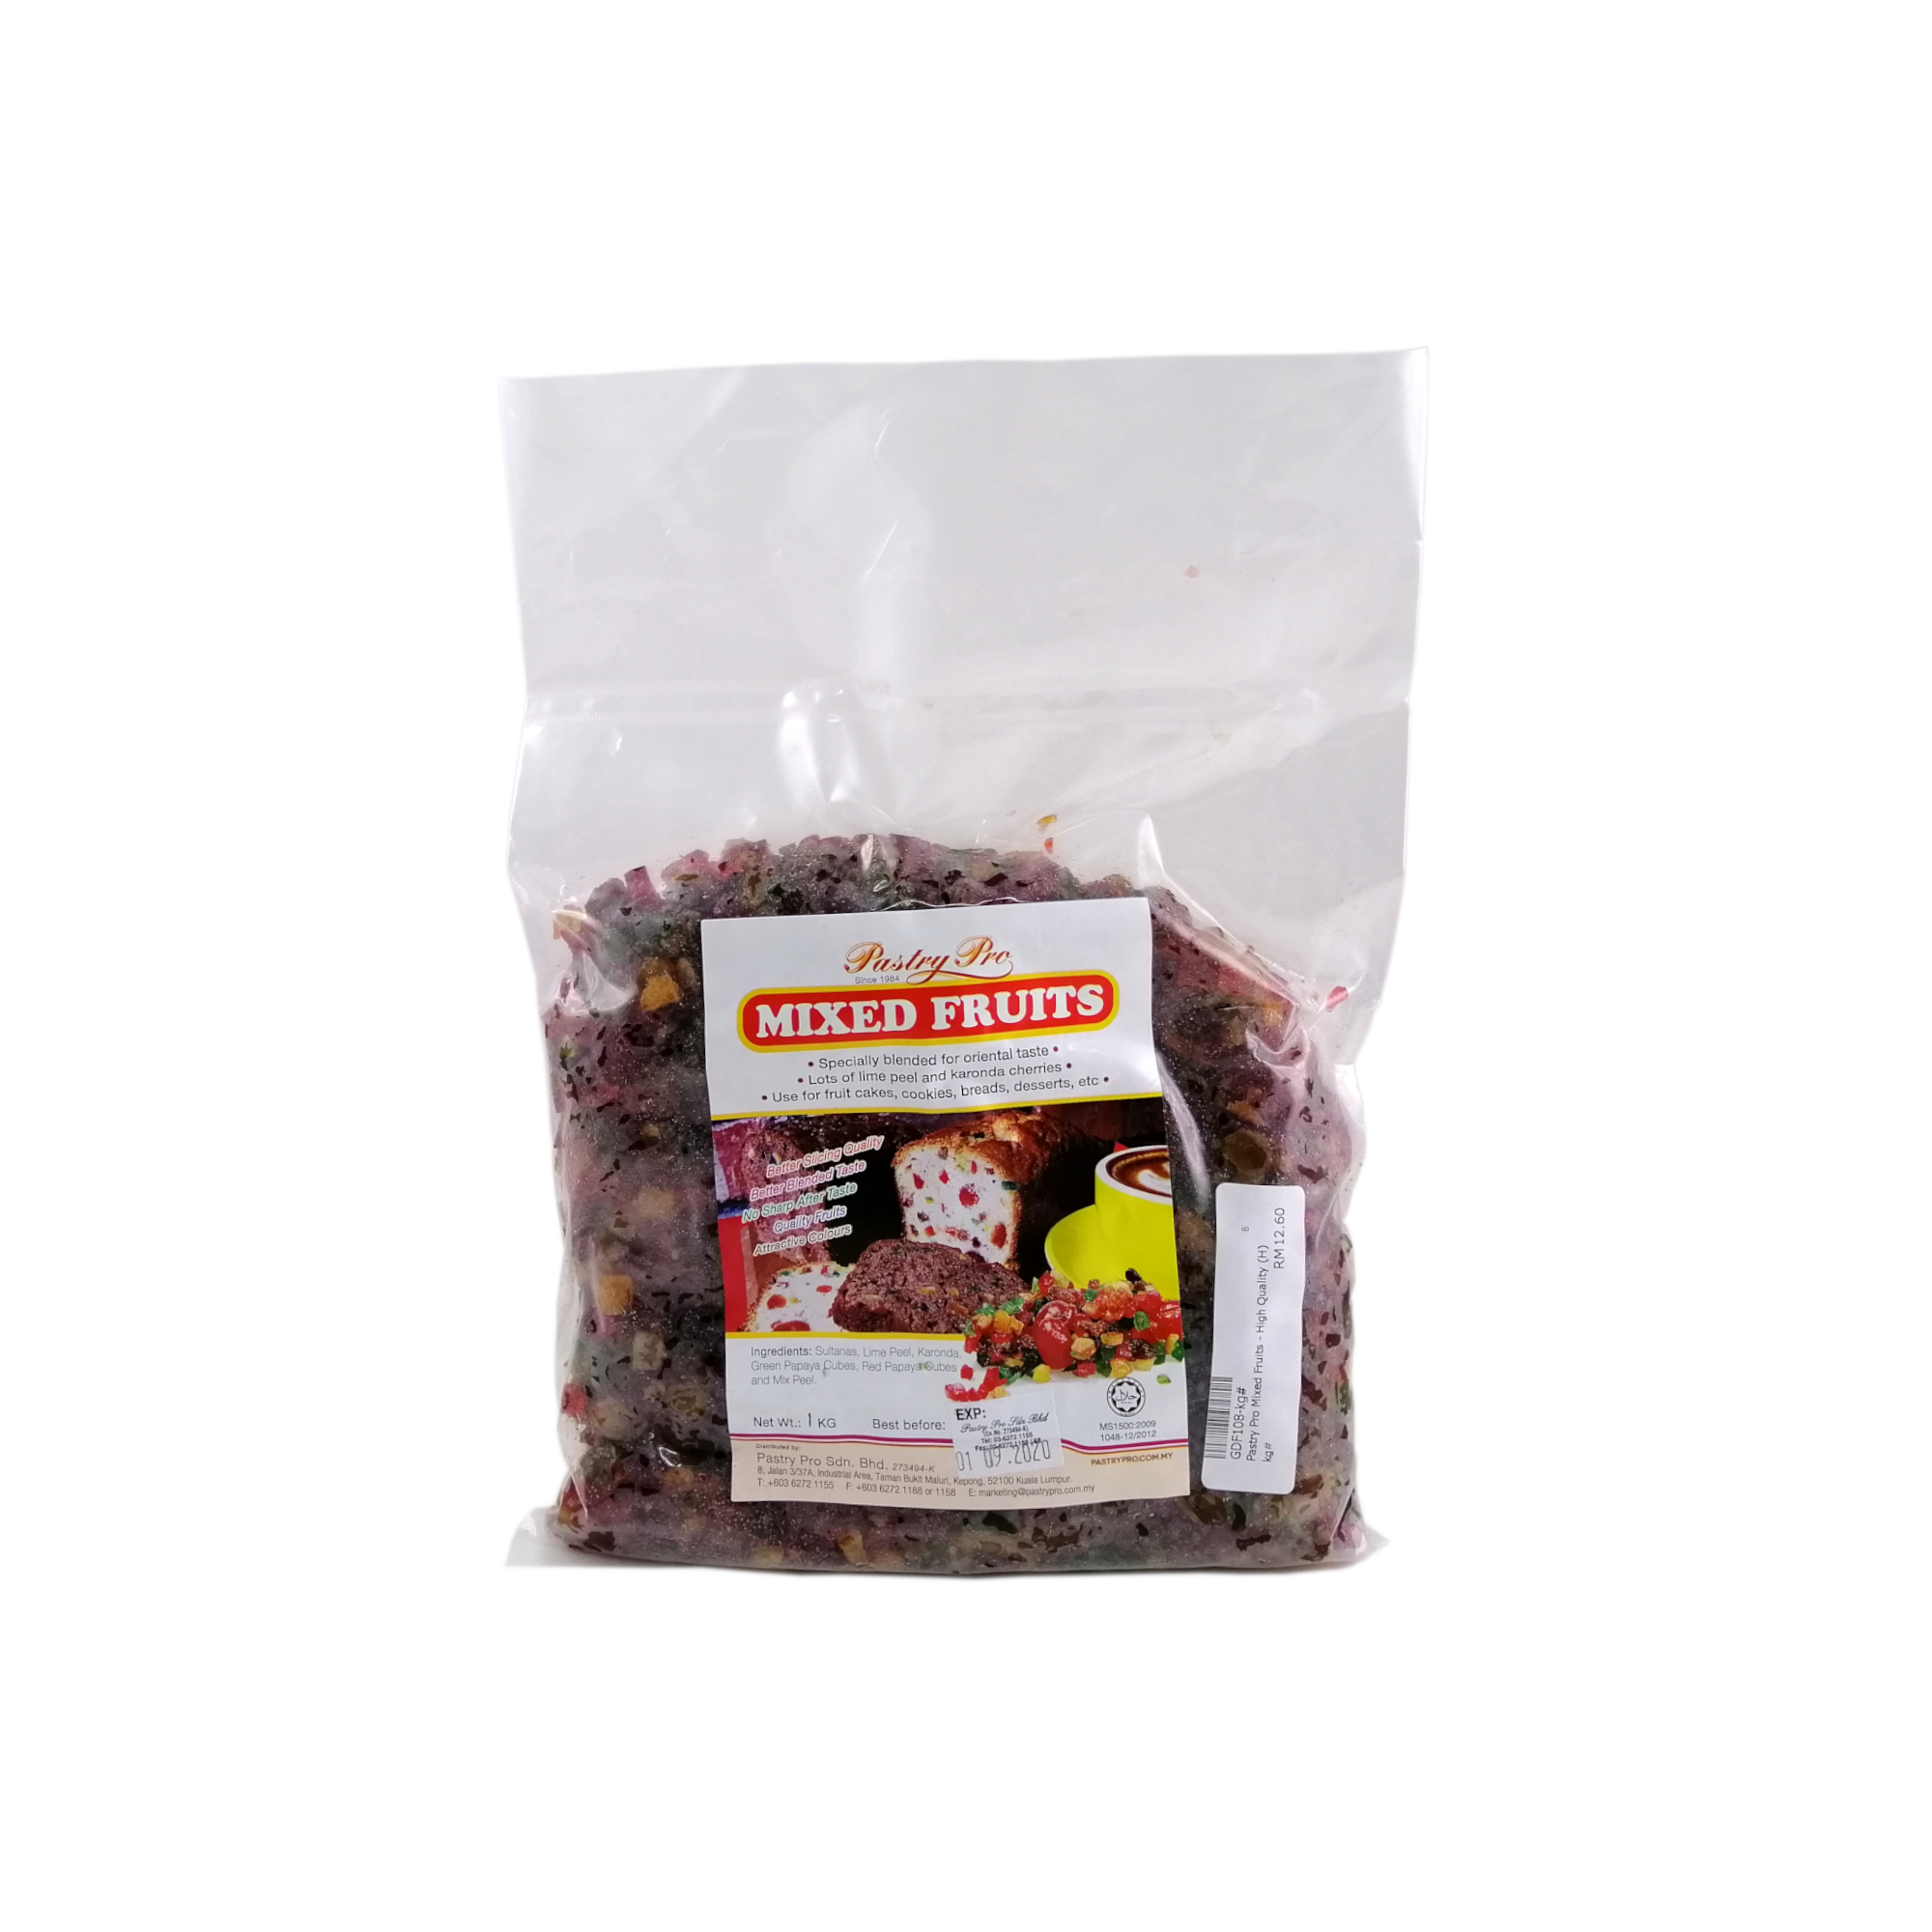 GDF108 pastry pro mixed fruits.png